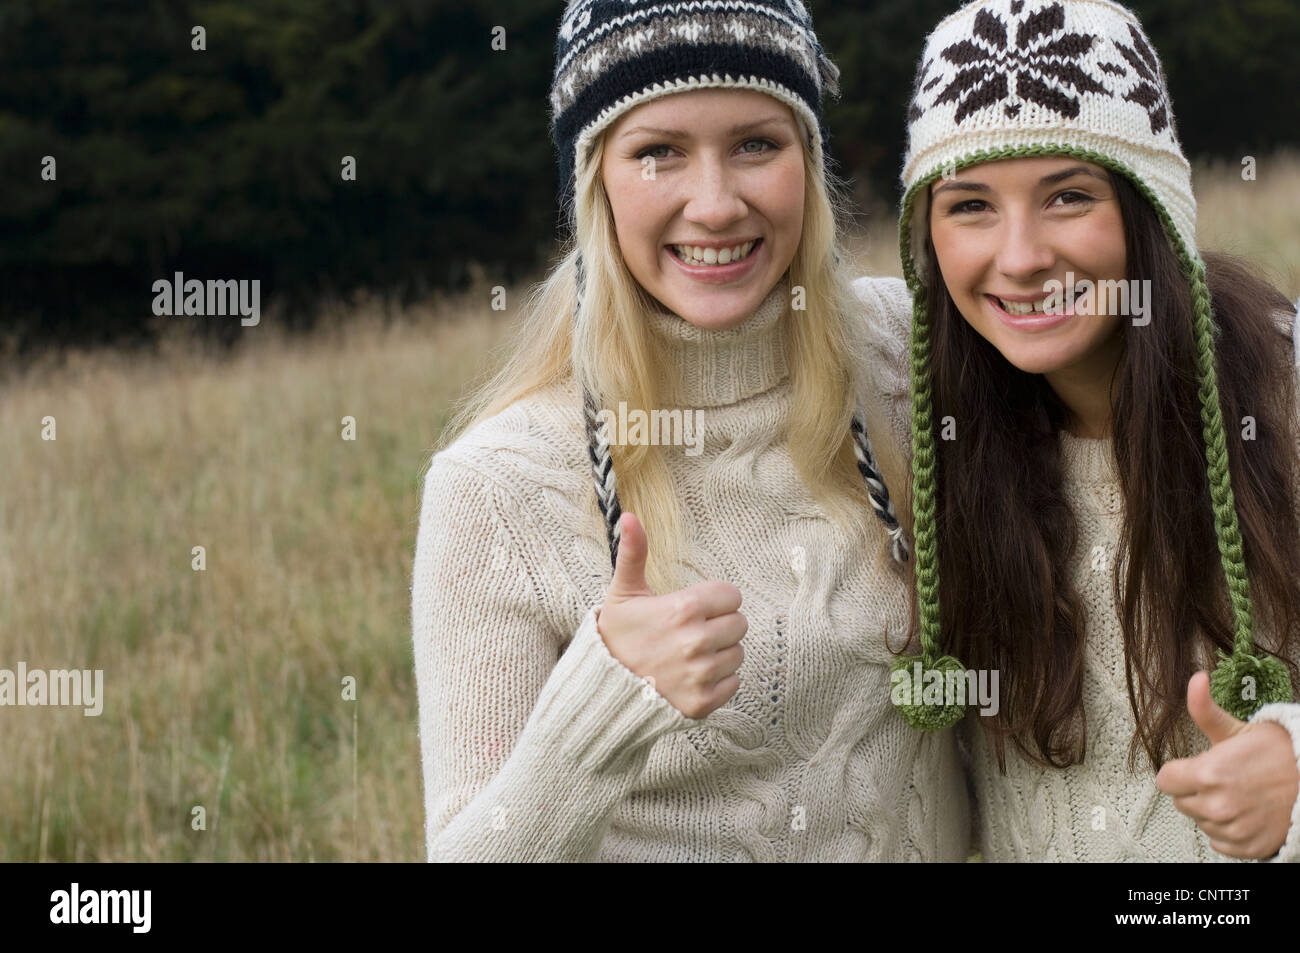 Mother and daughter giving thumbs up - Stock Image